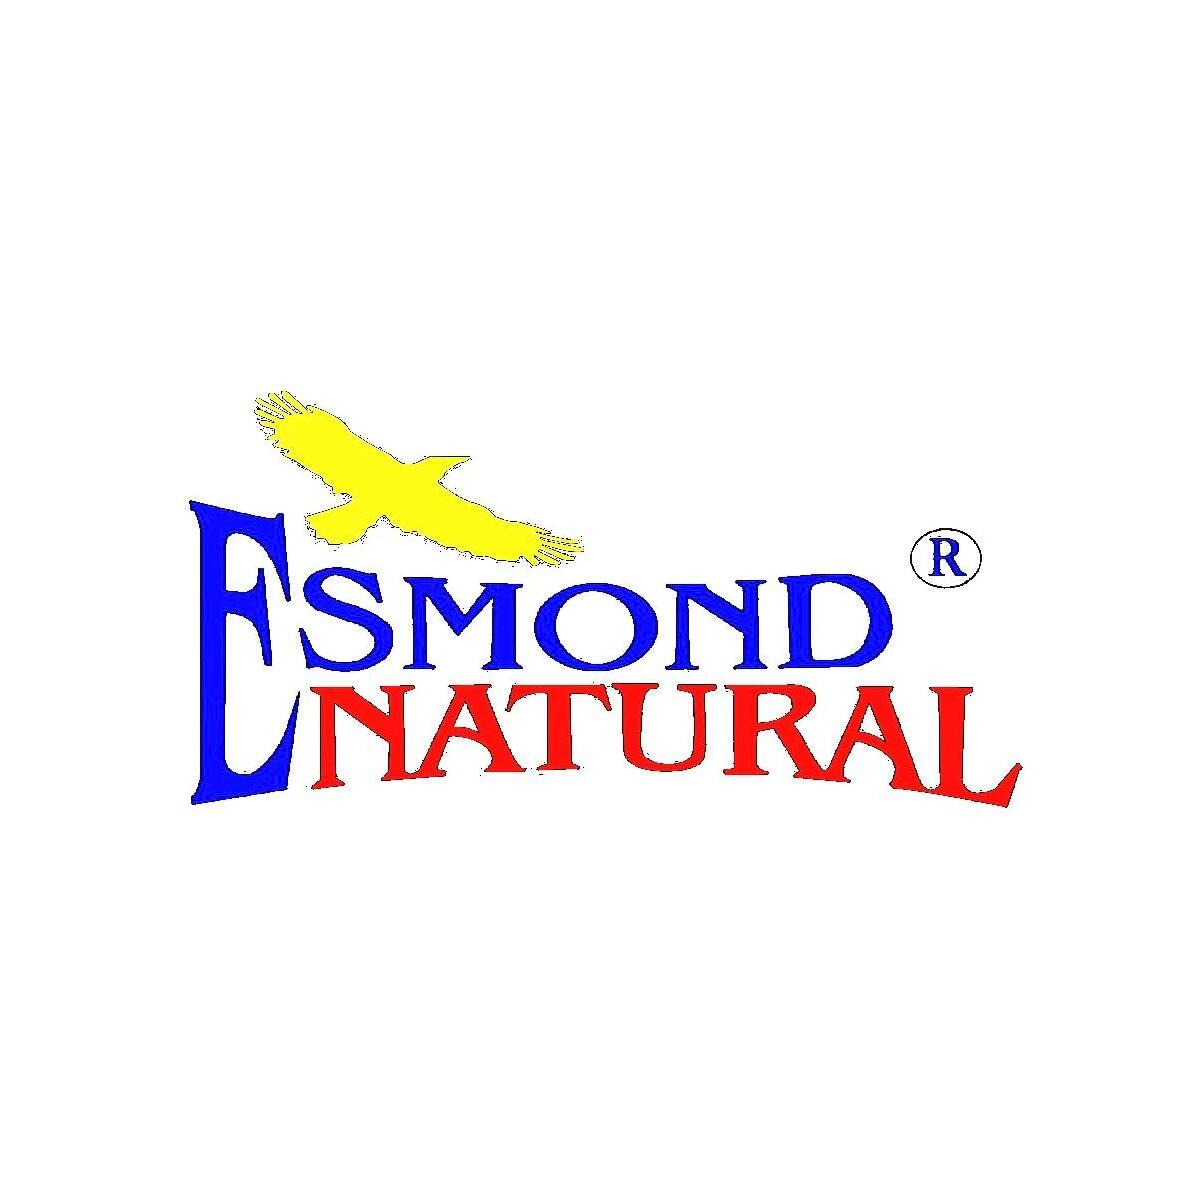 Esmond Natural: Bitter Melon Complex (Regulate Blood Sugar), GMP, Natural Product Assn Certified, Made in USA-528mg, 60 Capsules